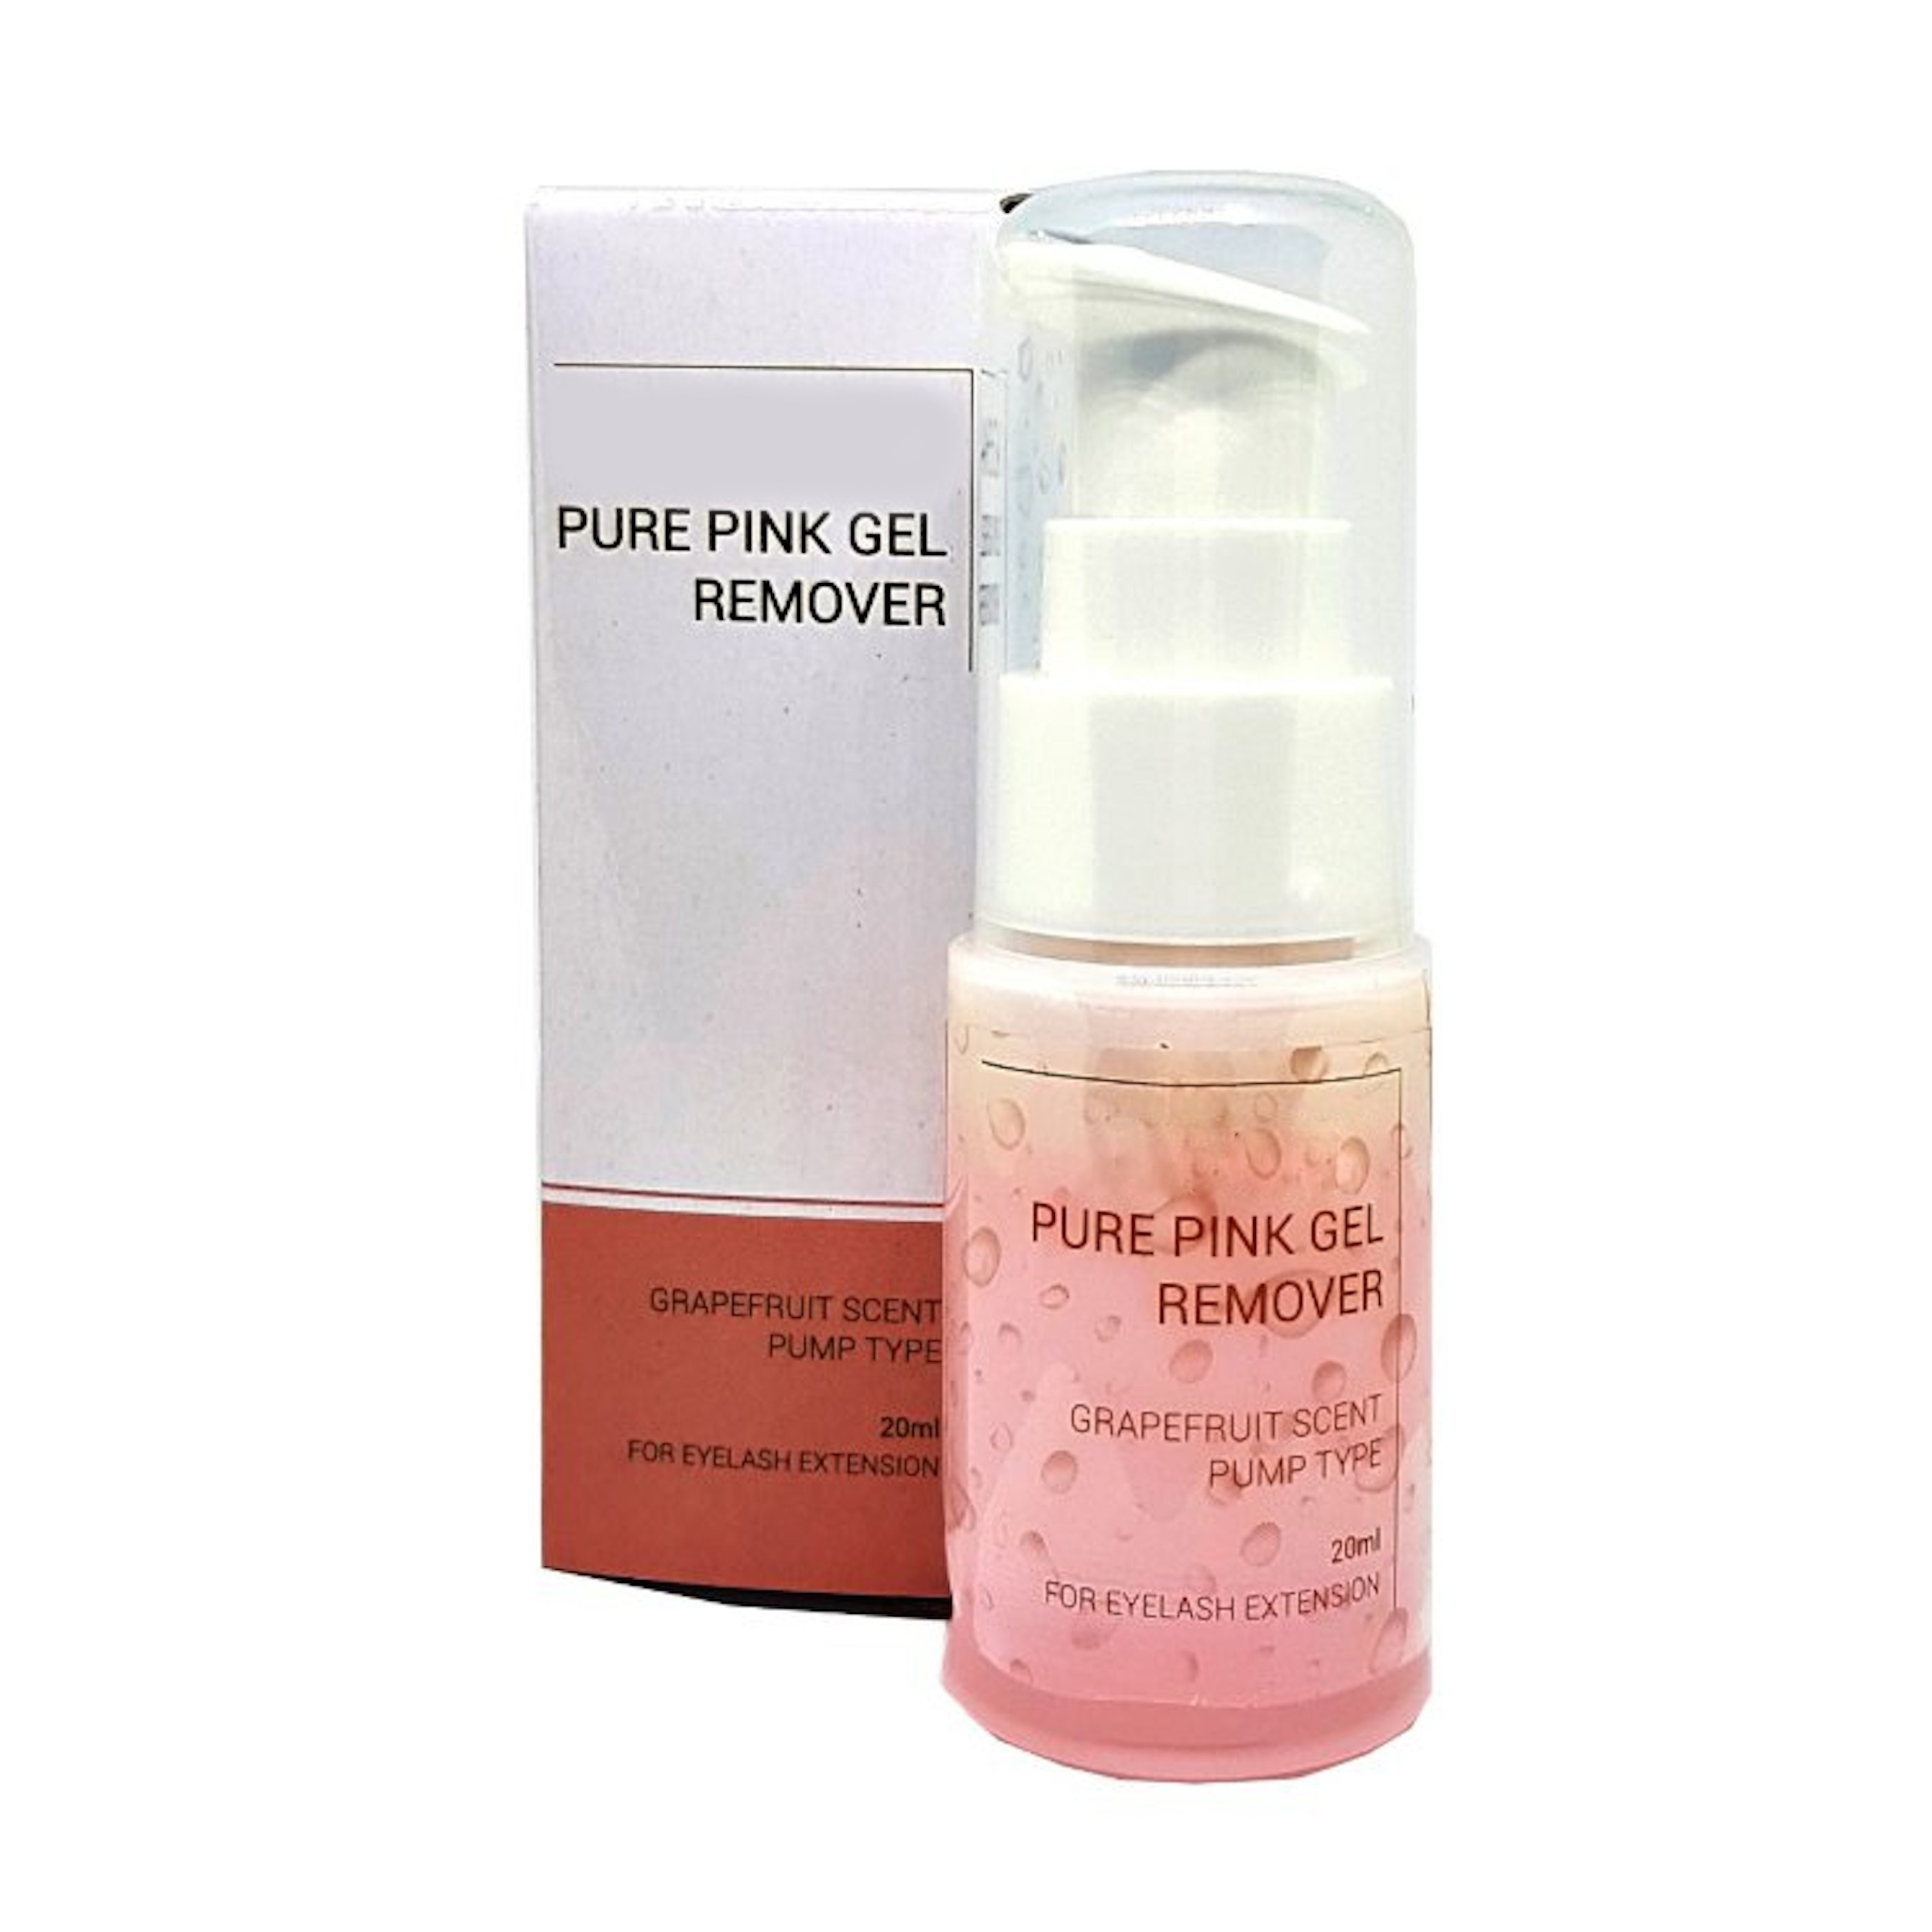 Pure pink gel remover - 20 ml